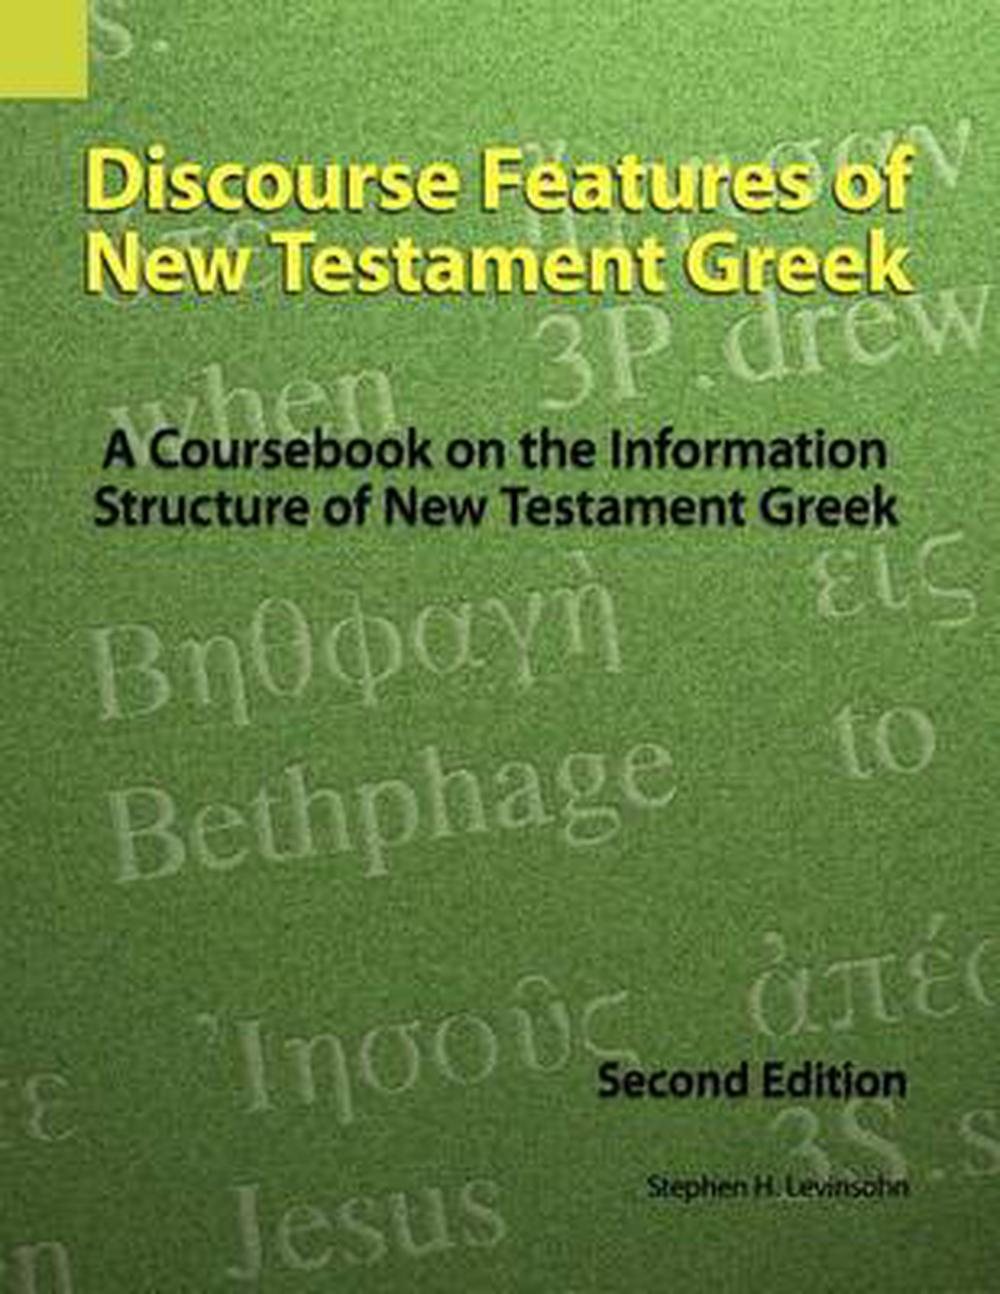 Discourse Features of New Testament Greek